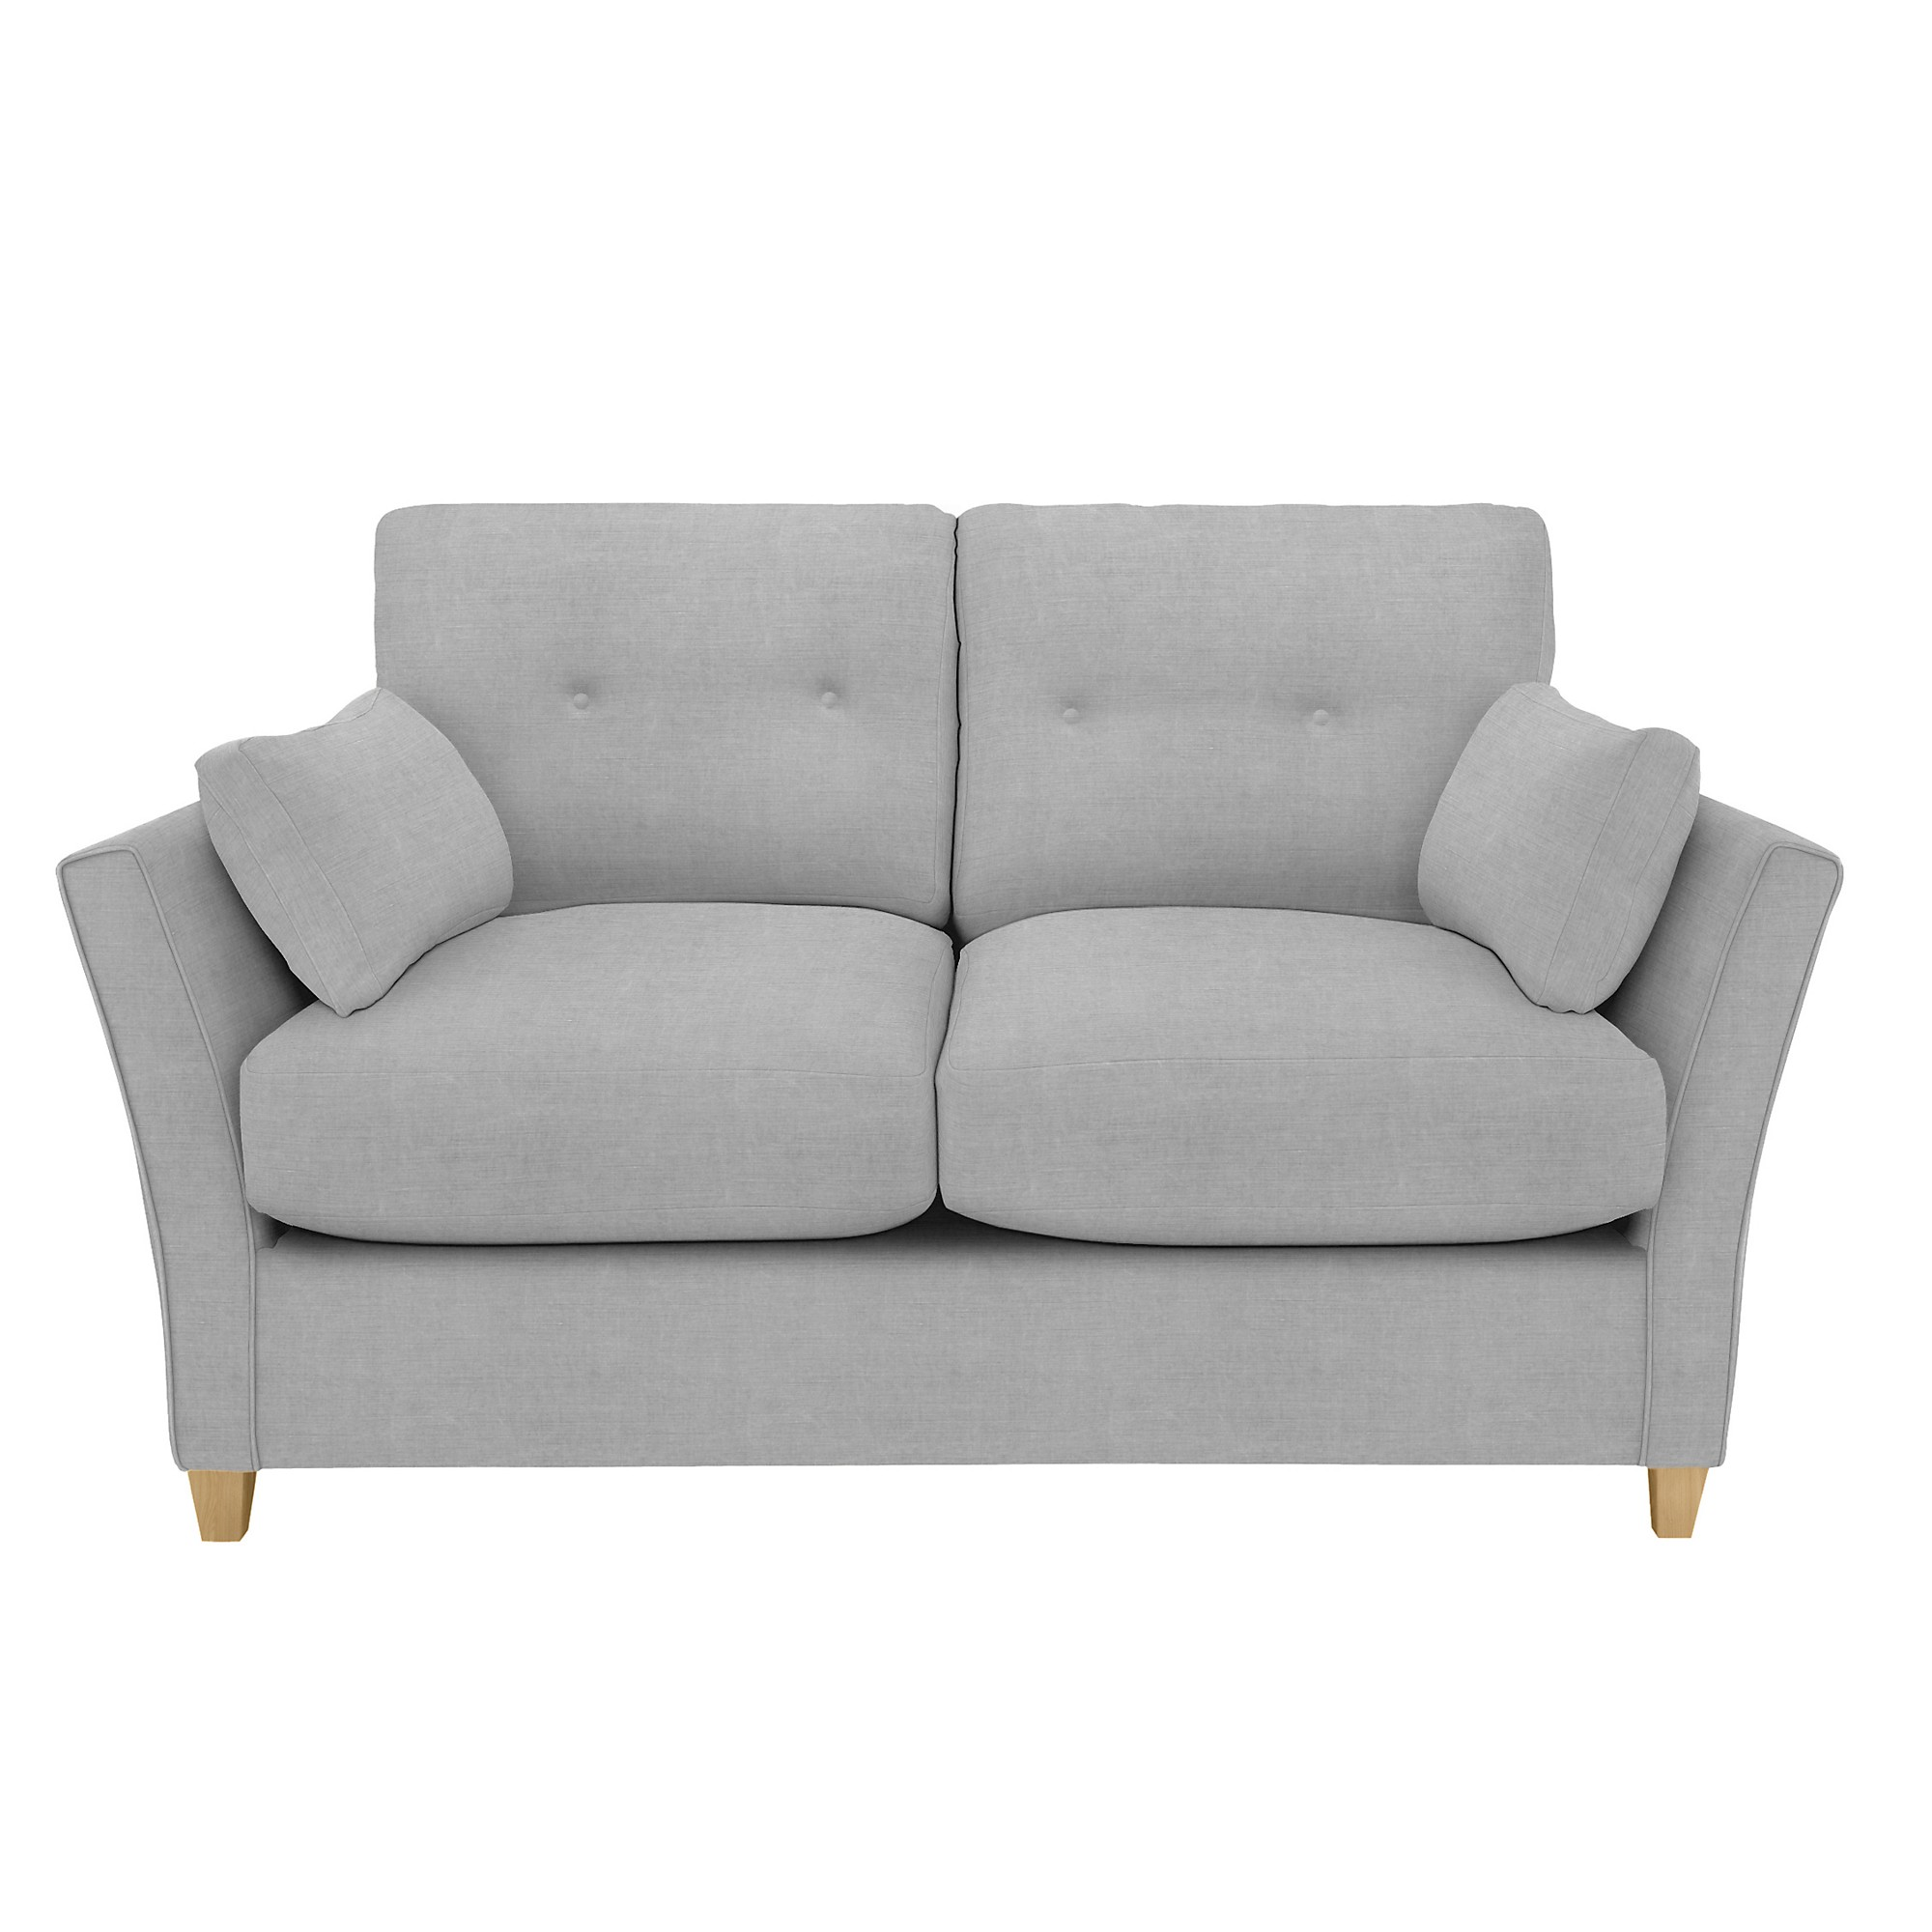 John Lewis Chopin Small Pocket Sprung Sofa Bed